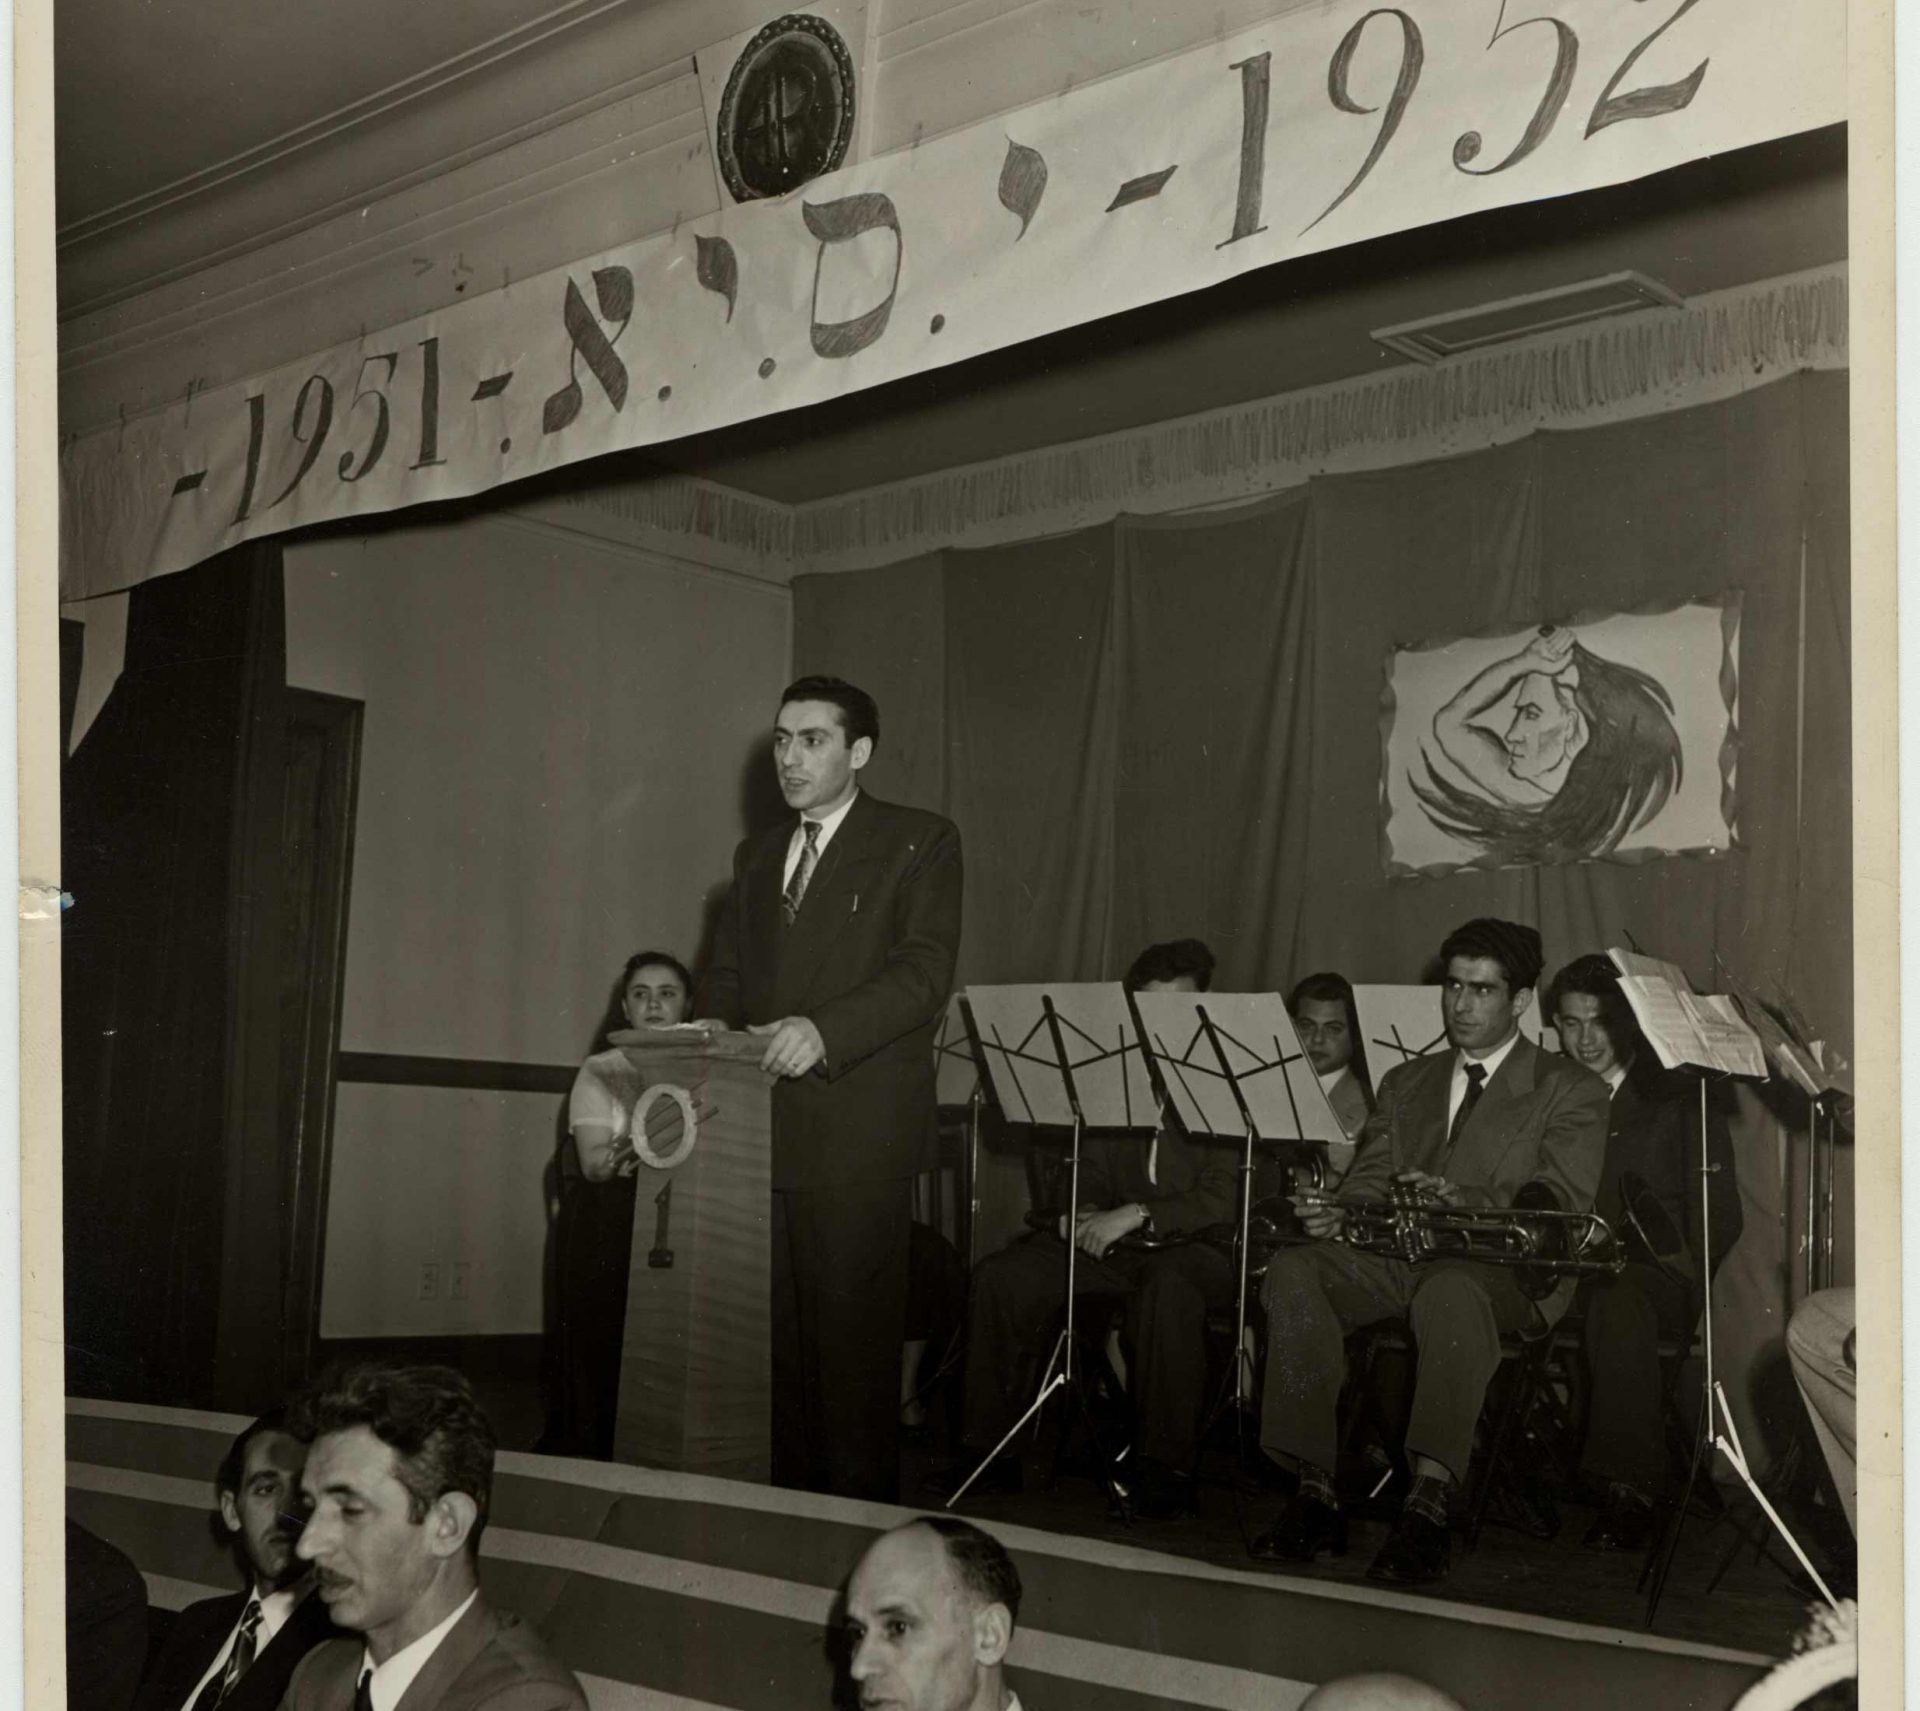 Photograph taken in Montreal in 1952 at the Zukunft Orchestra's first anniversary. Avrum is standing at the podium.